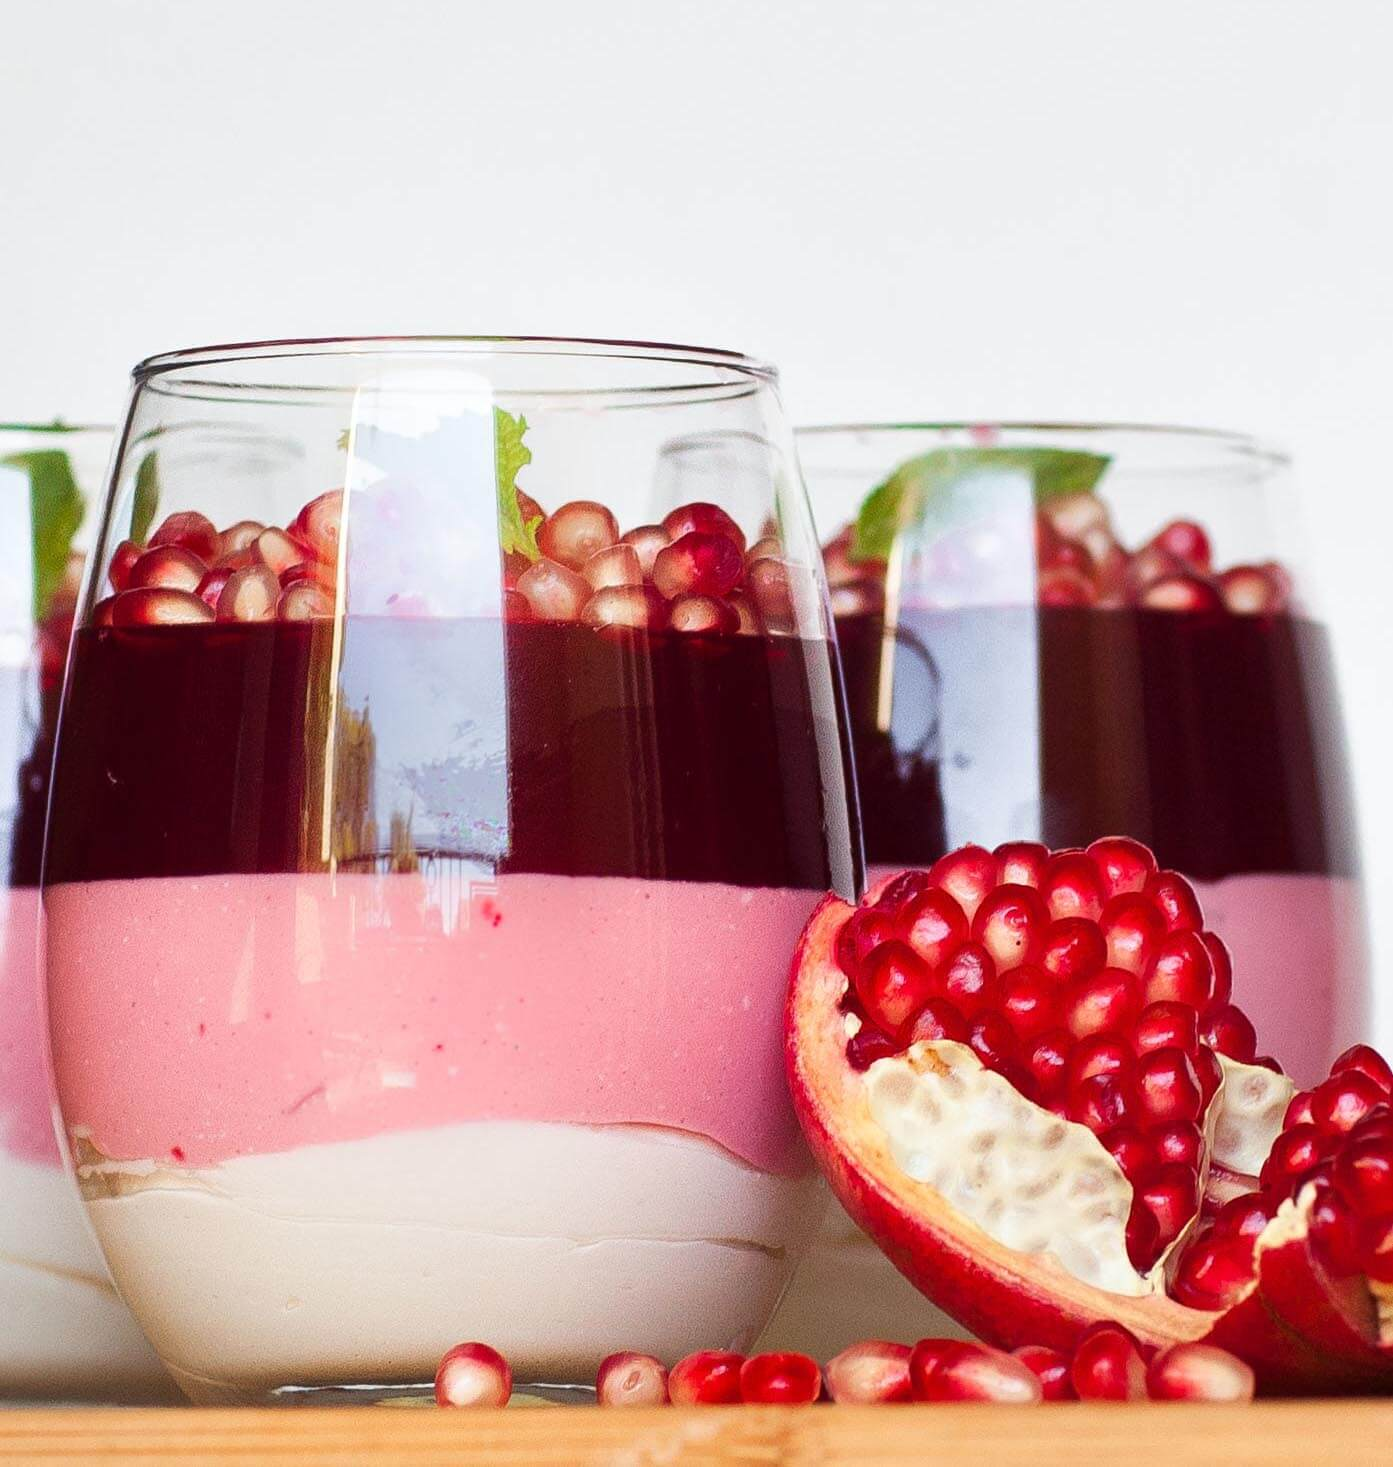 triple layered pomegranate parfait cups